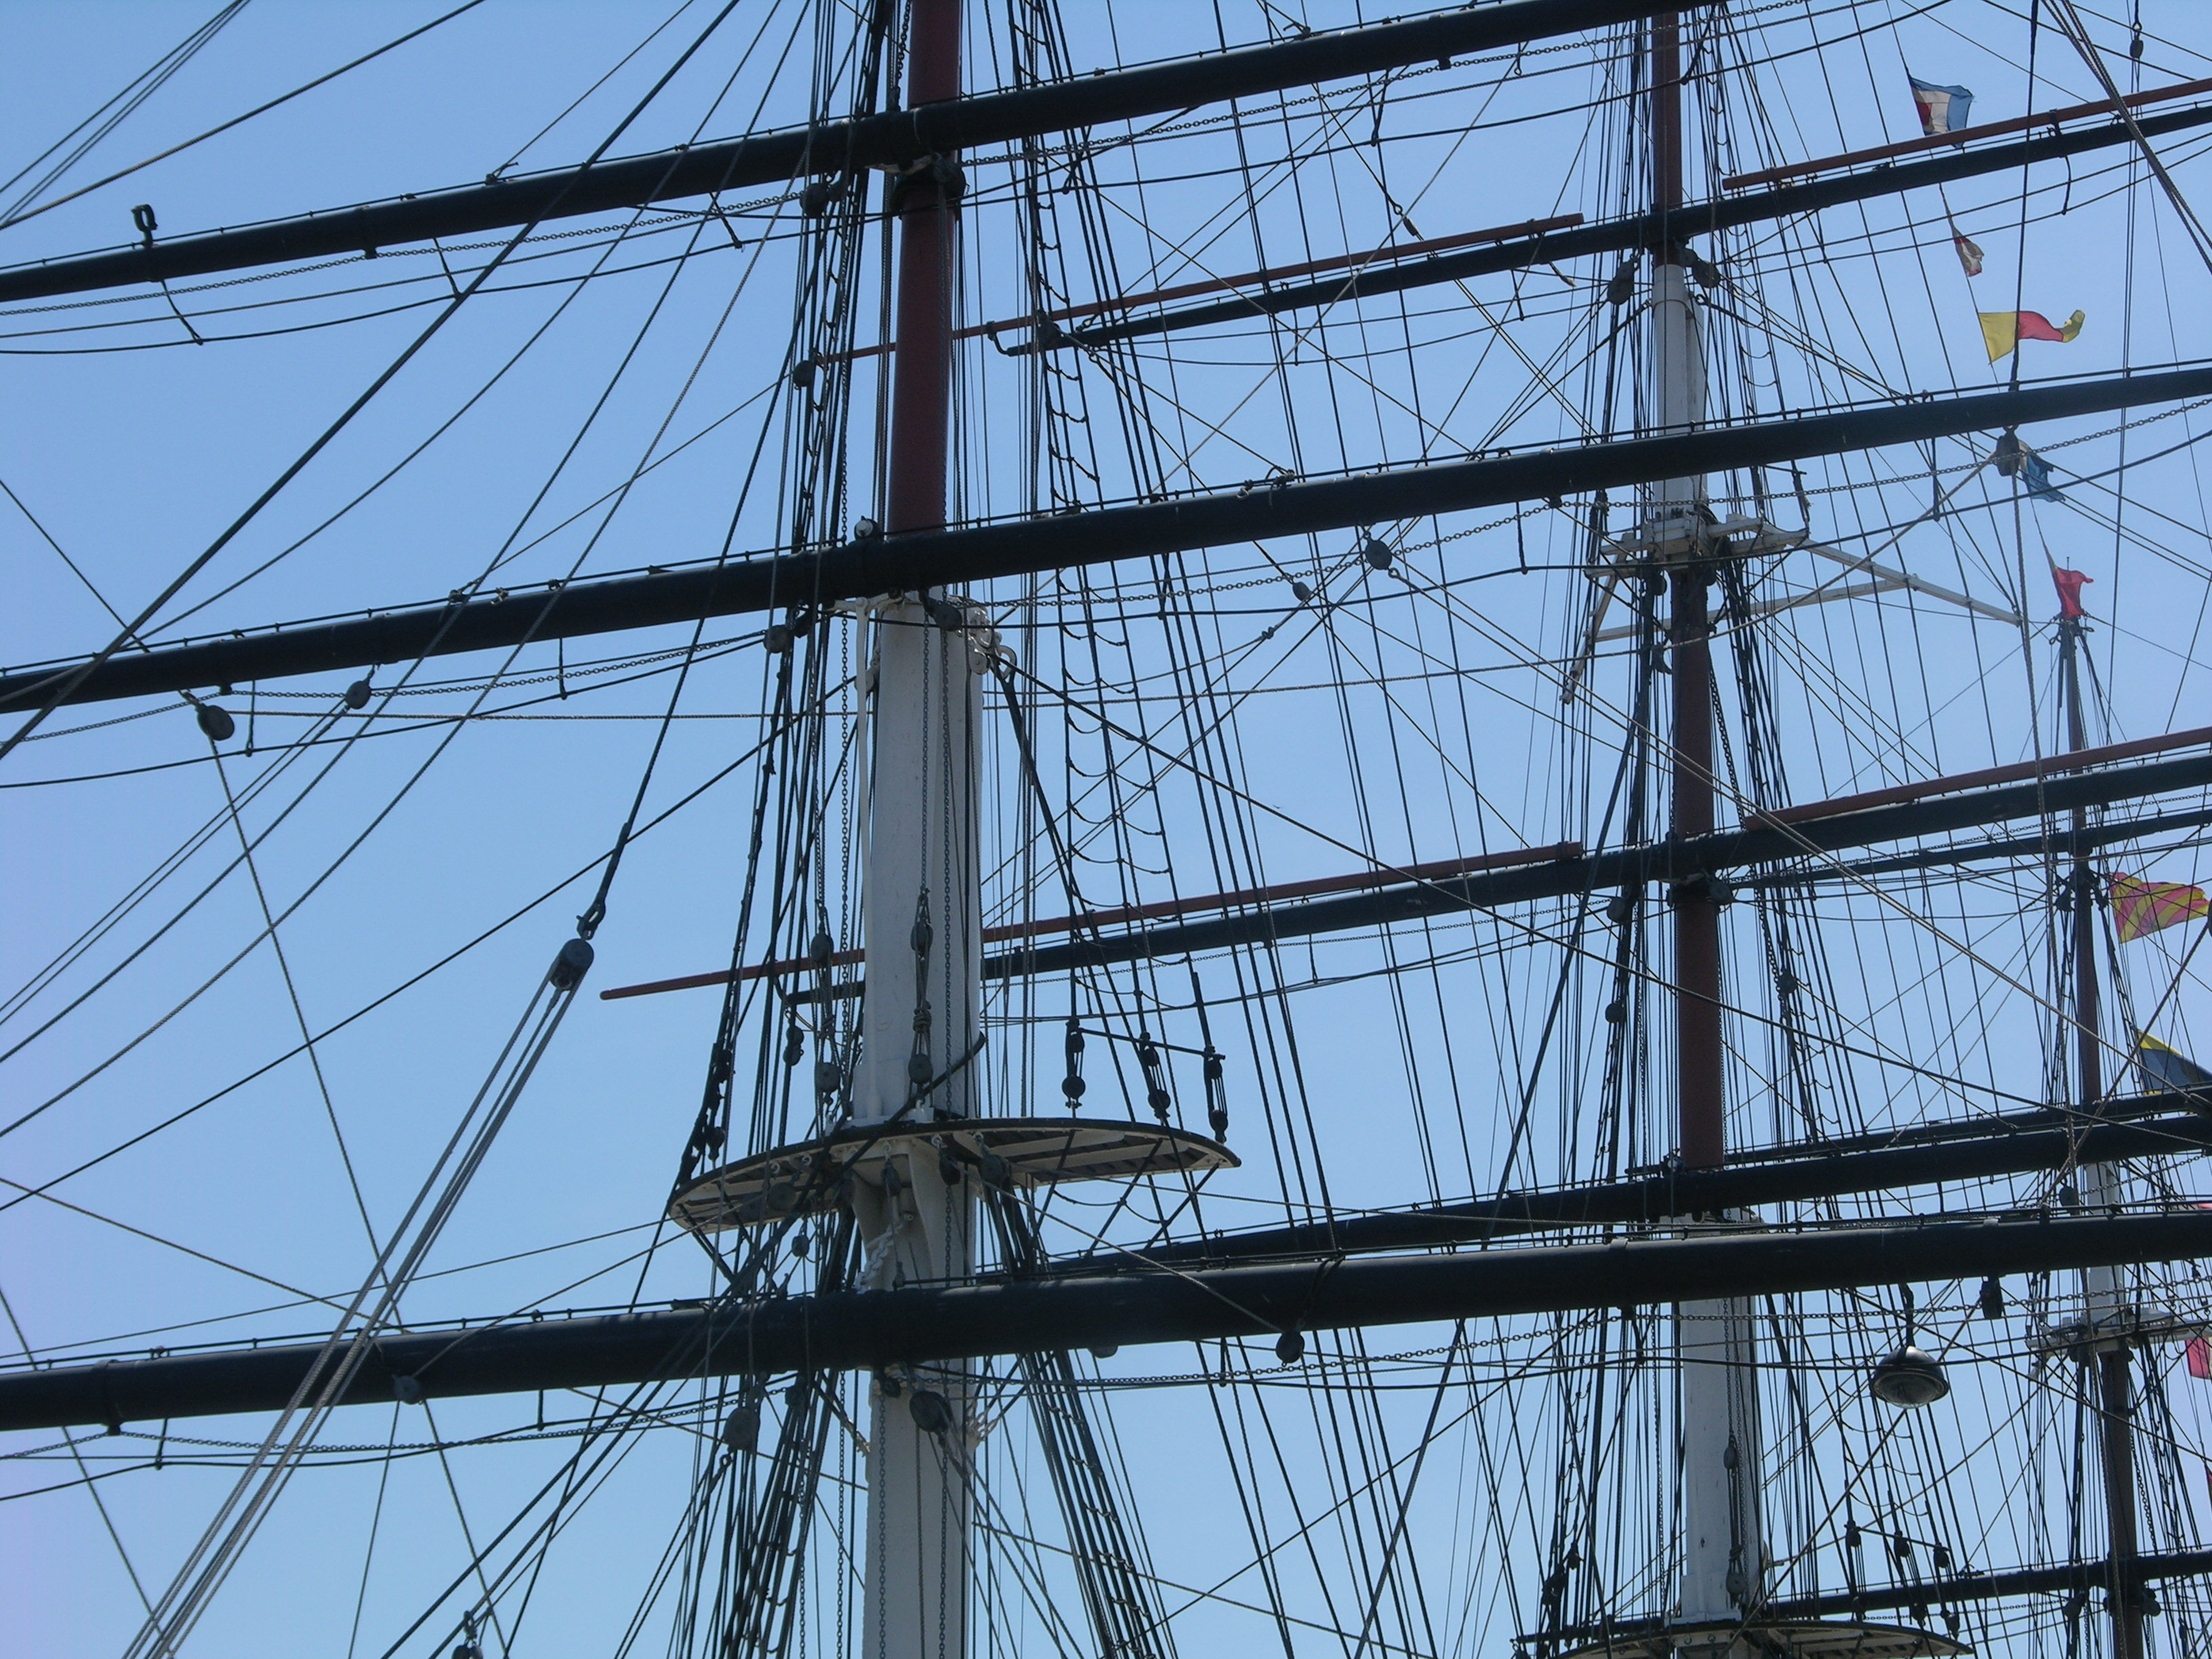 Rigging on the Ship, Boat, Journey, Rigging, Rope, HQ Photo